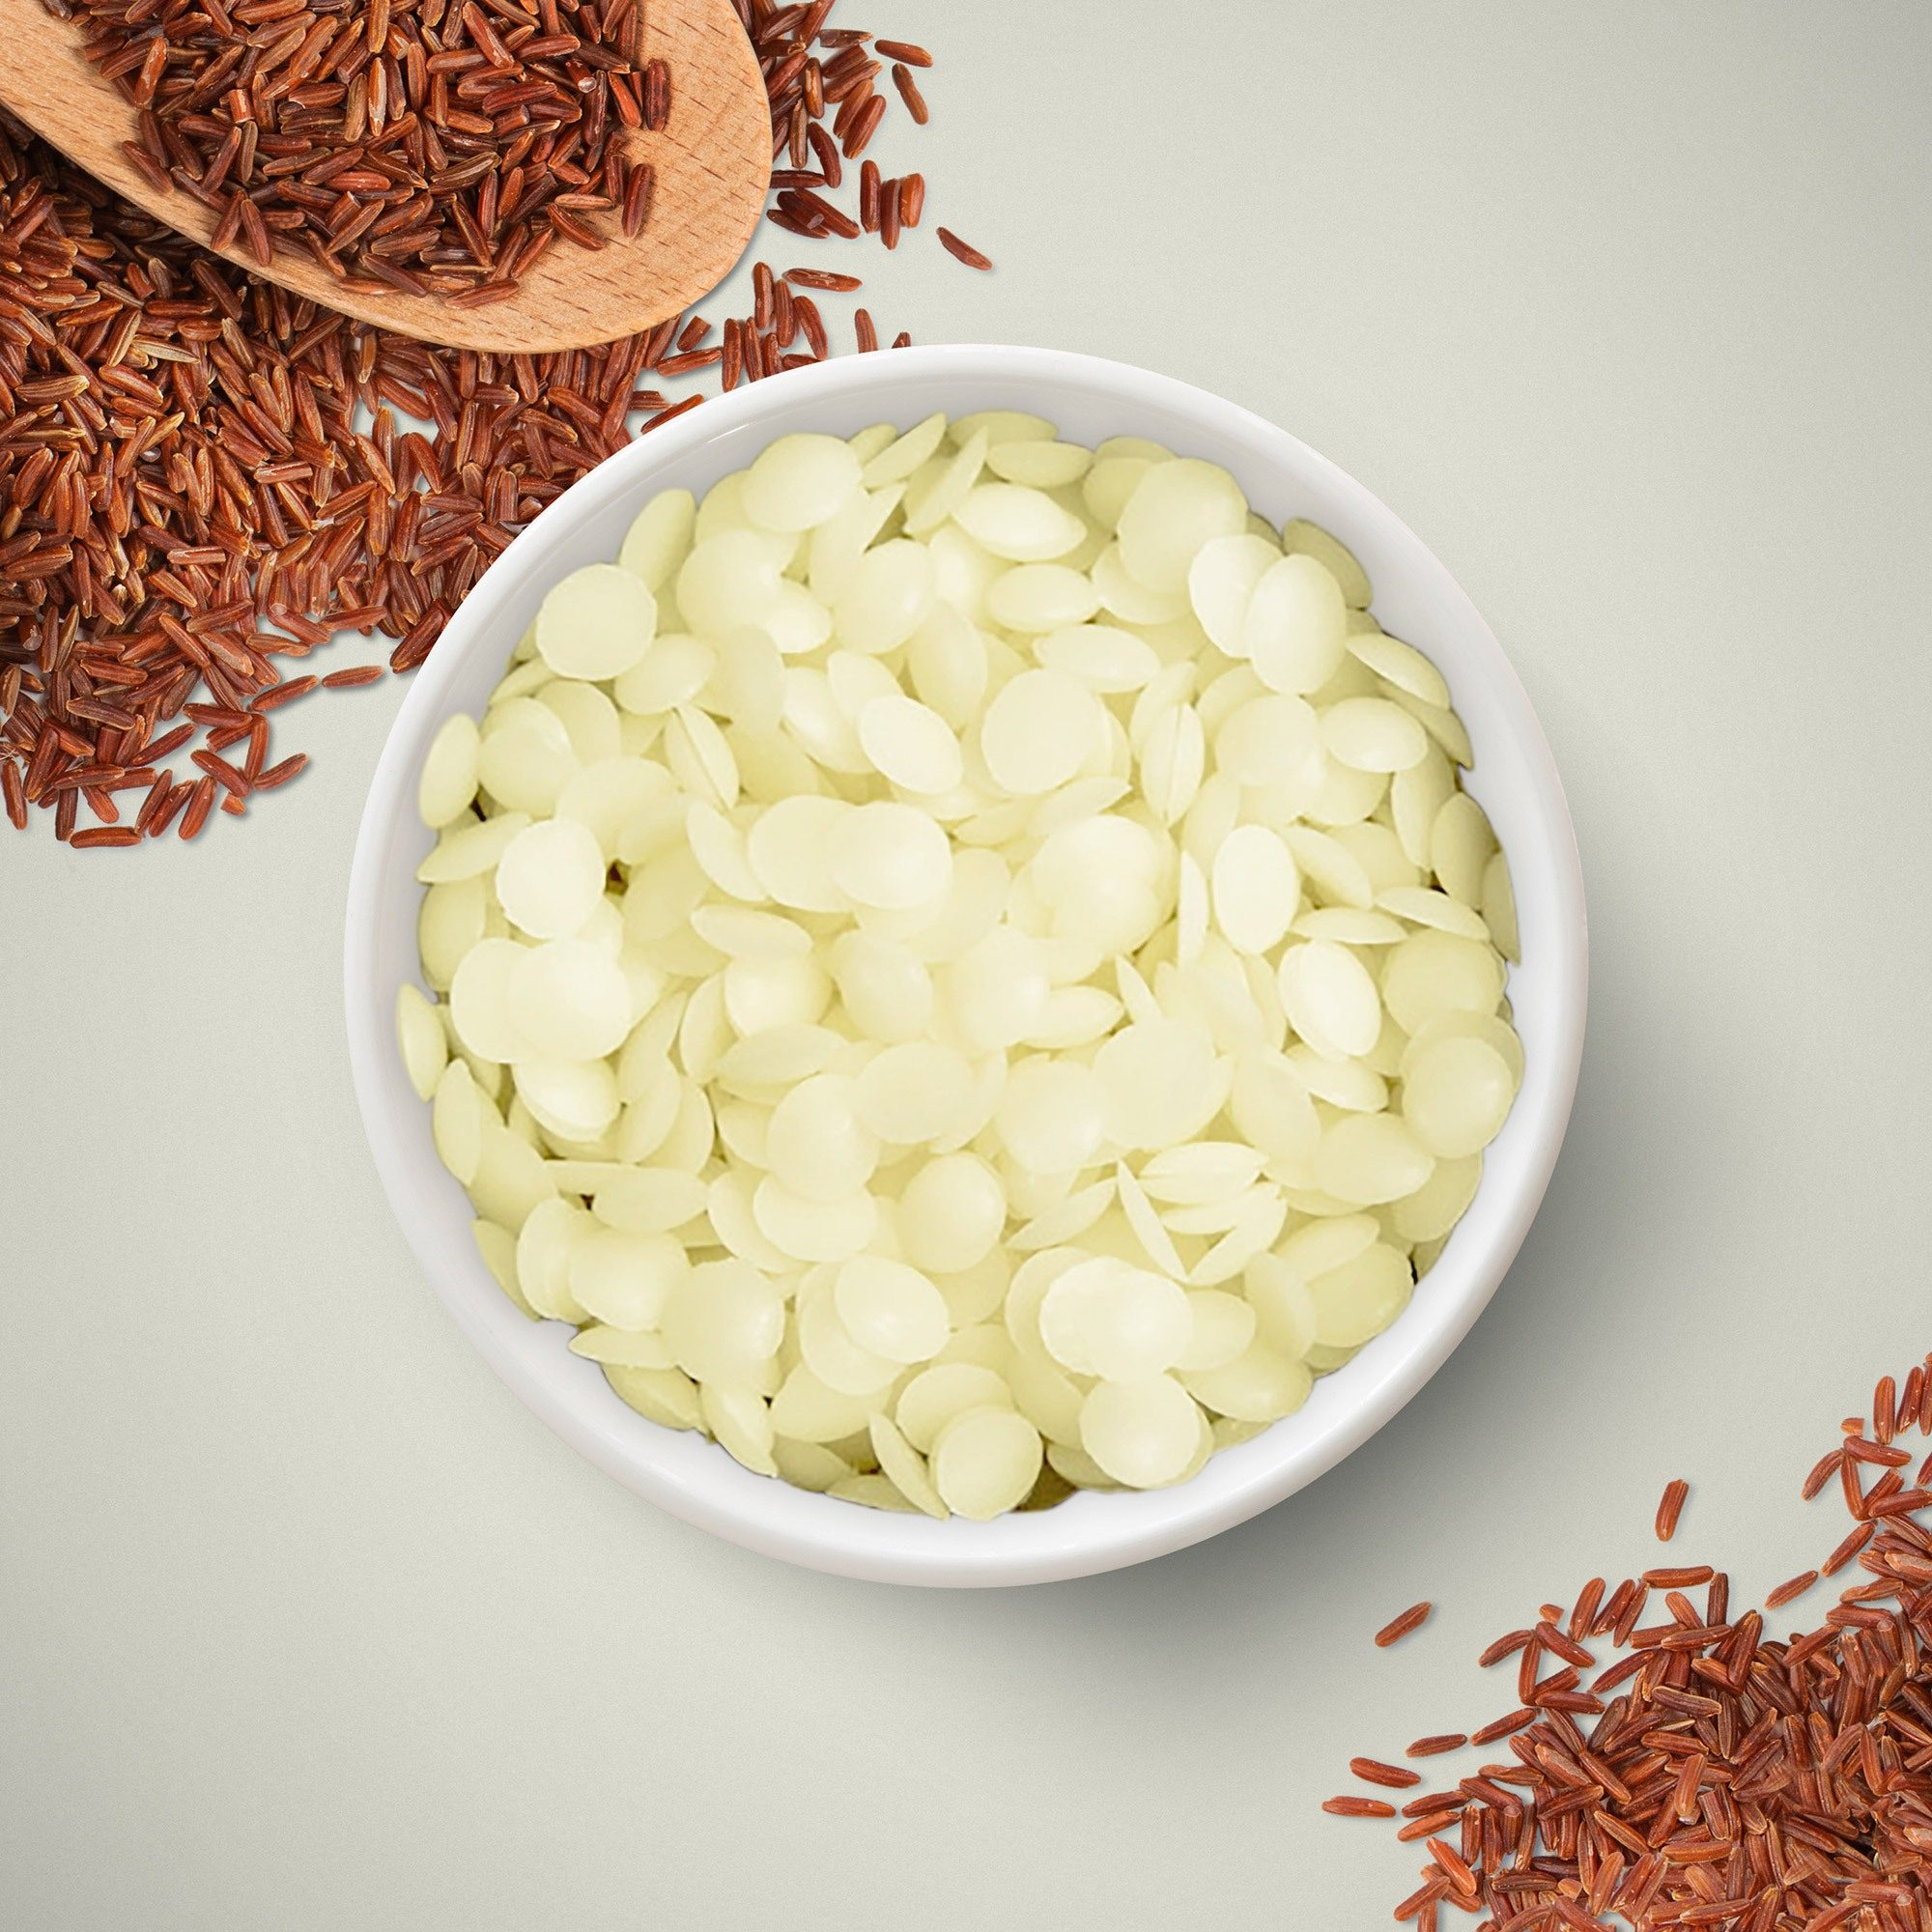 A bowl of rice brand wax beads on a surface surrounded by brown rice – supplied by 1875.